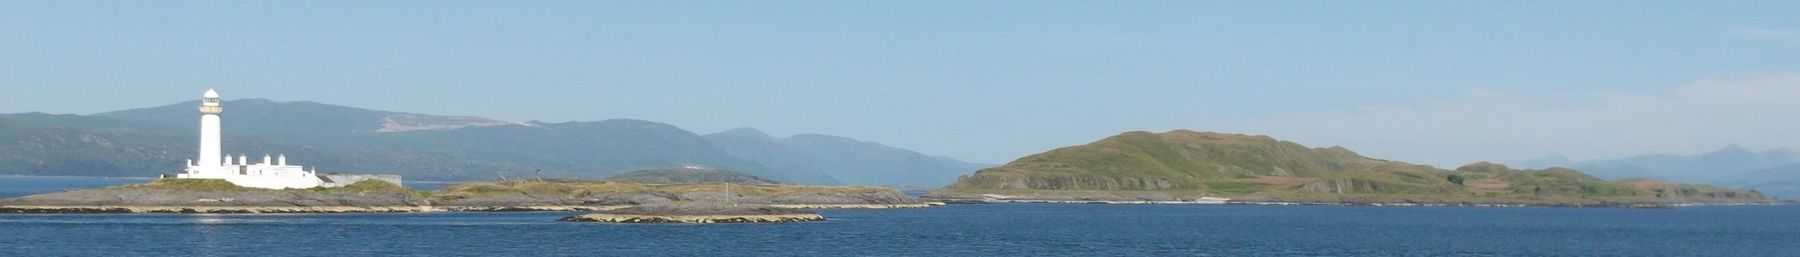 Isle of Lismore (Scotland) banner View from Barra Ferry.JPG